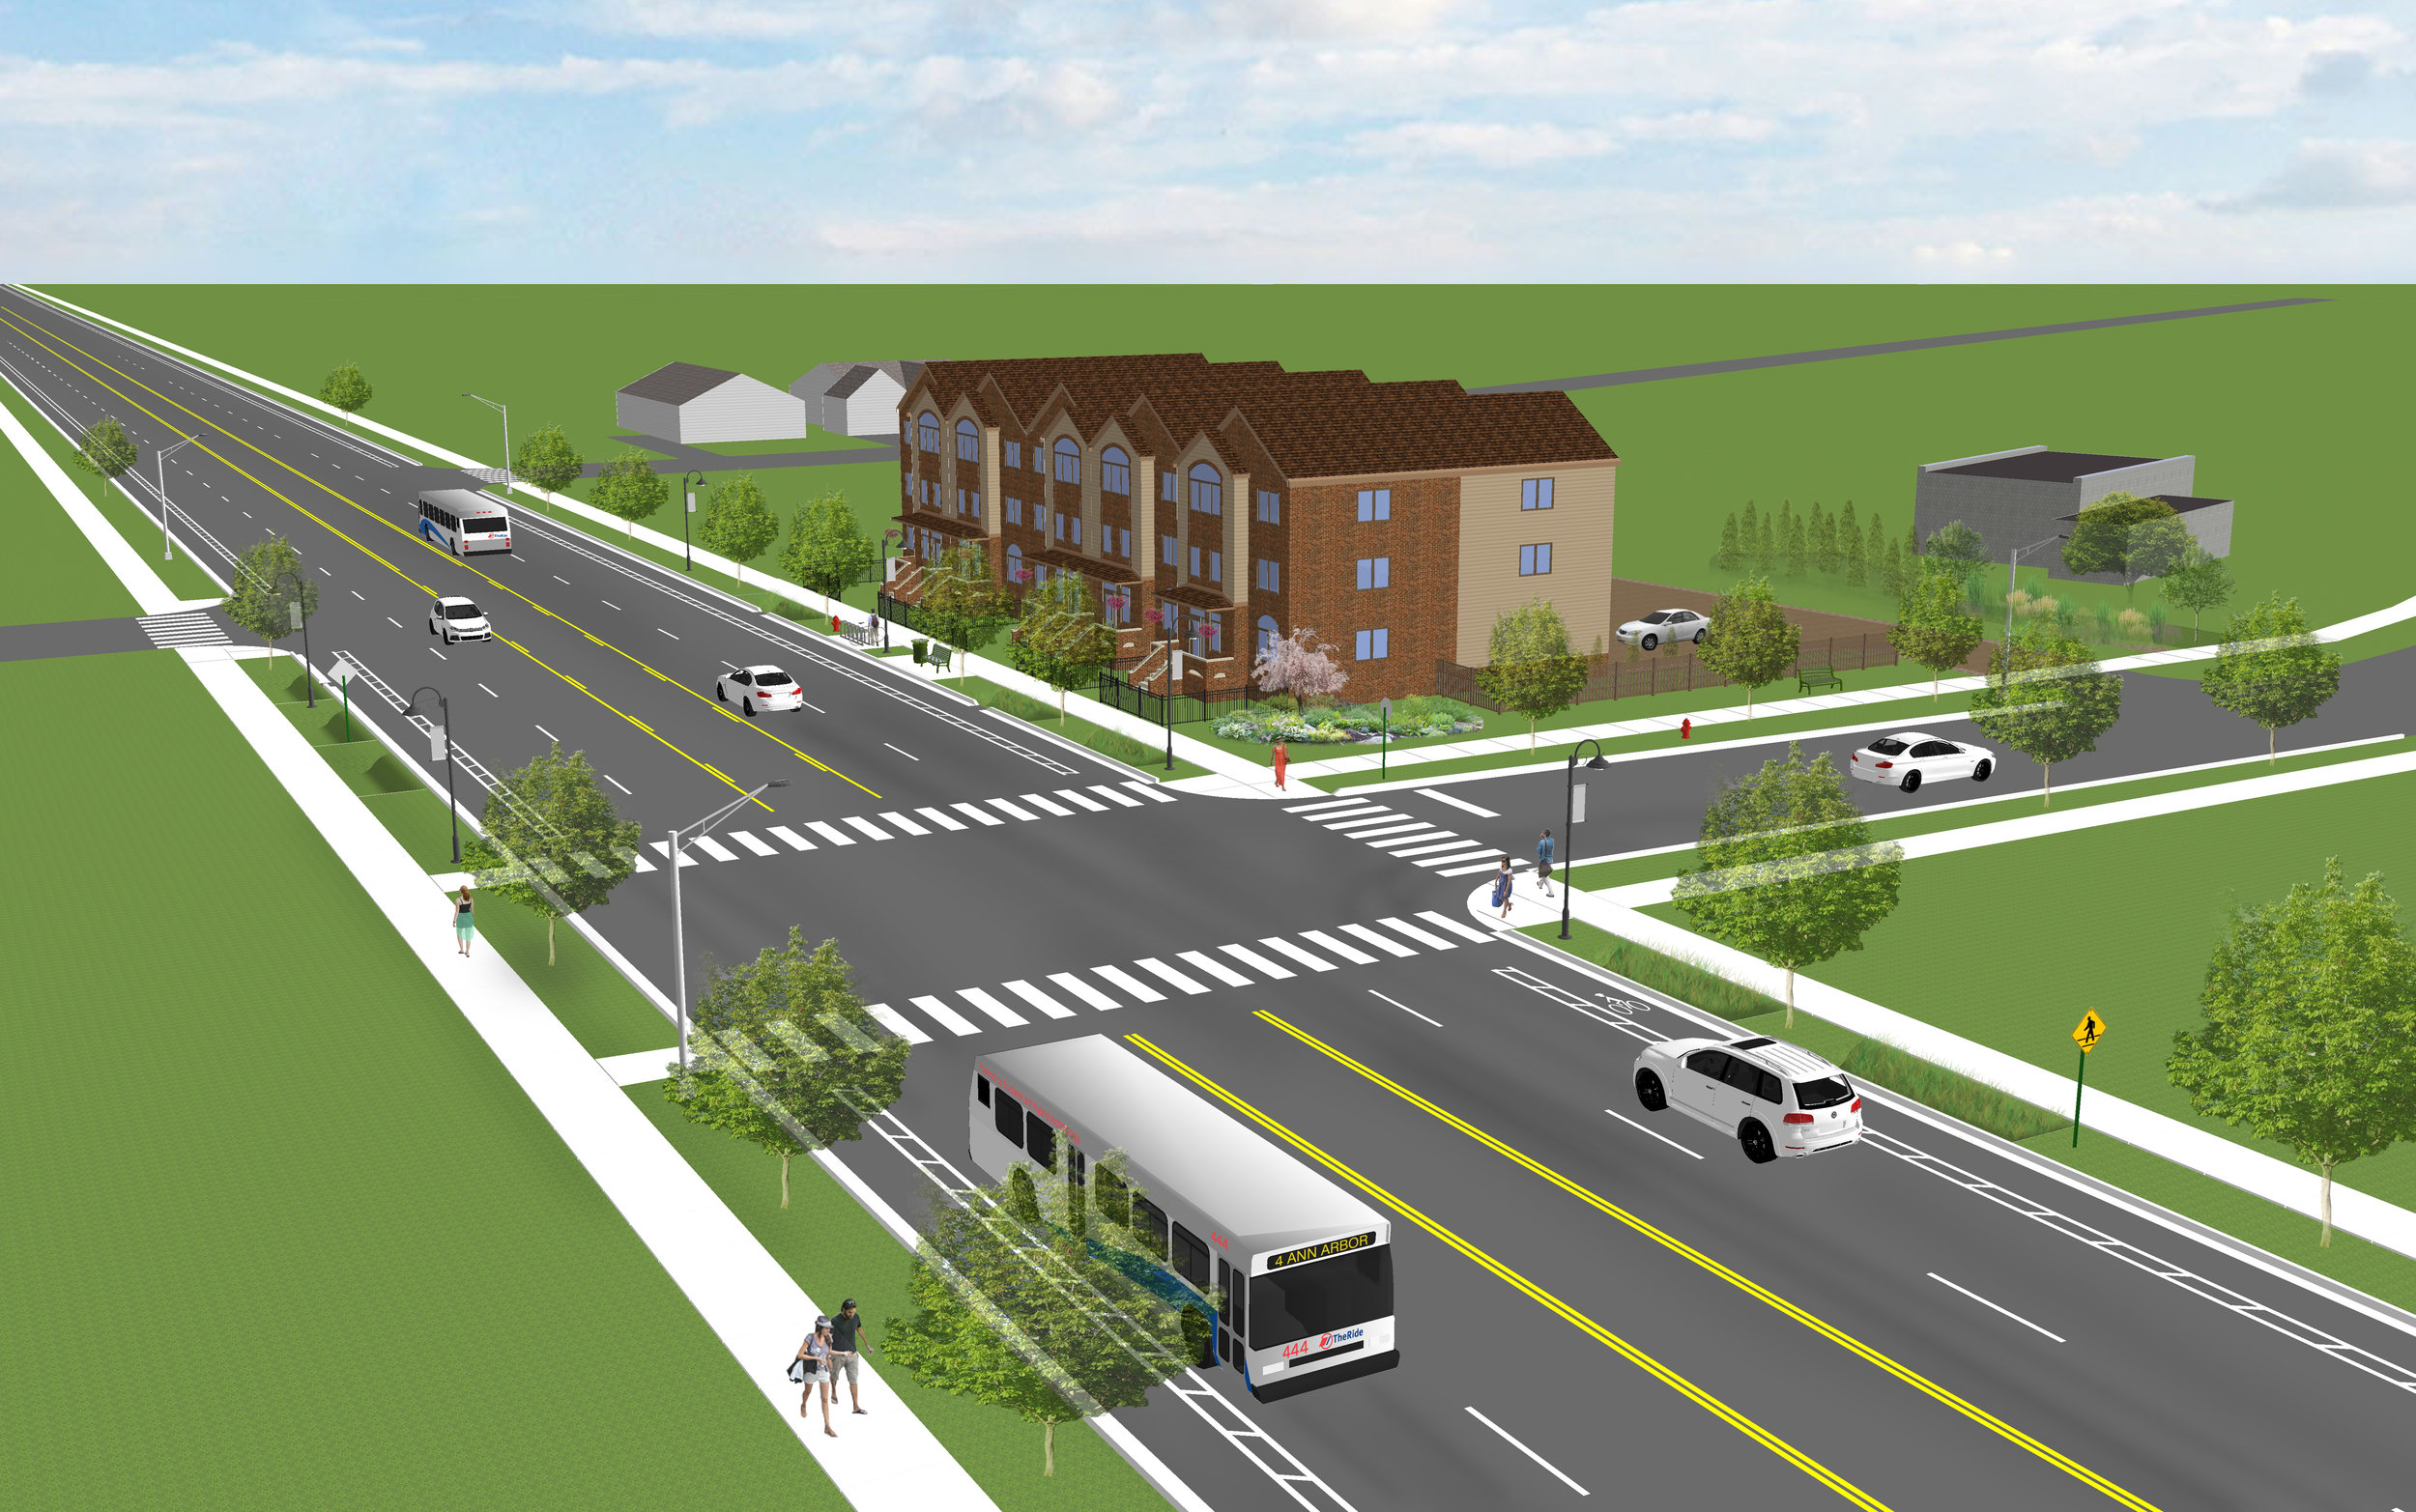 Complete streets plan in Pittsfield Township